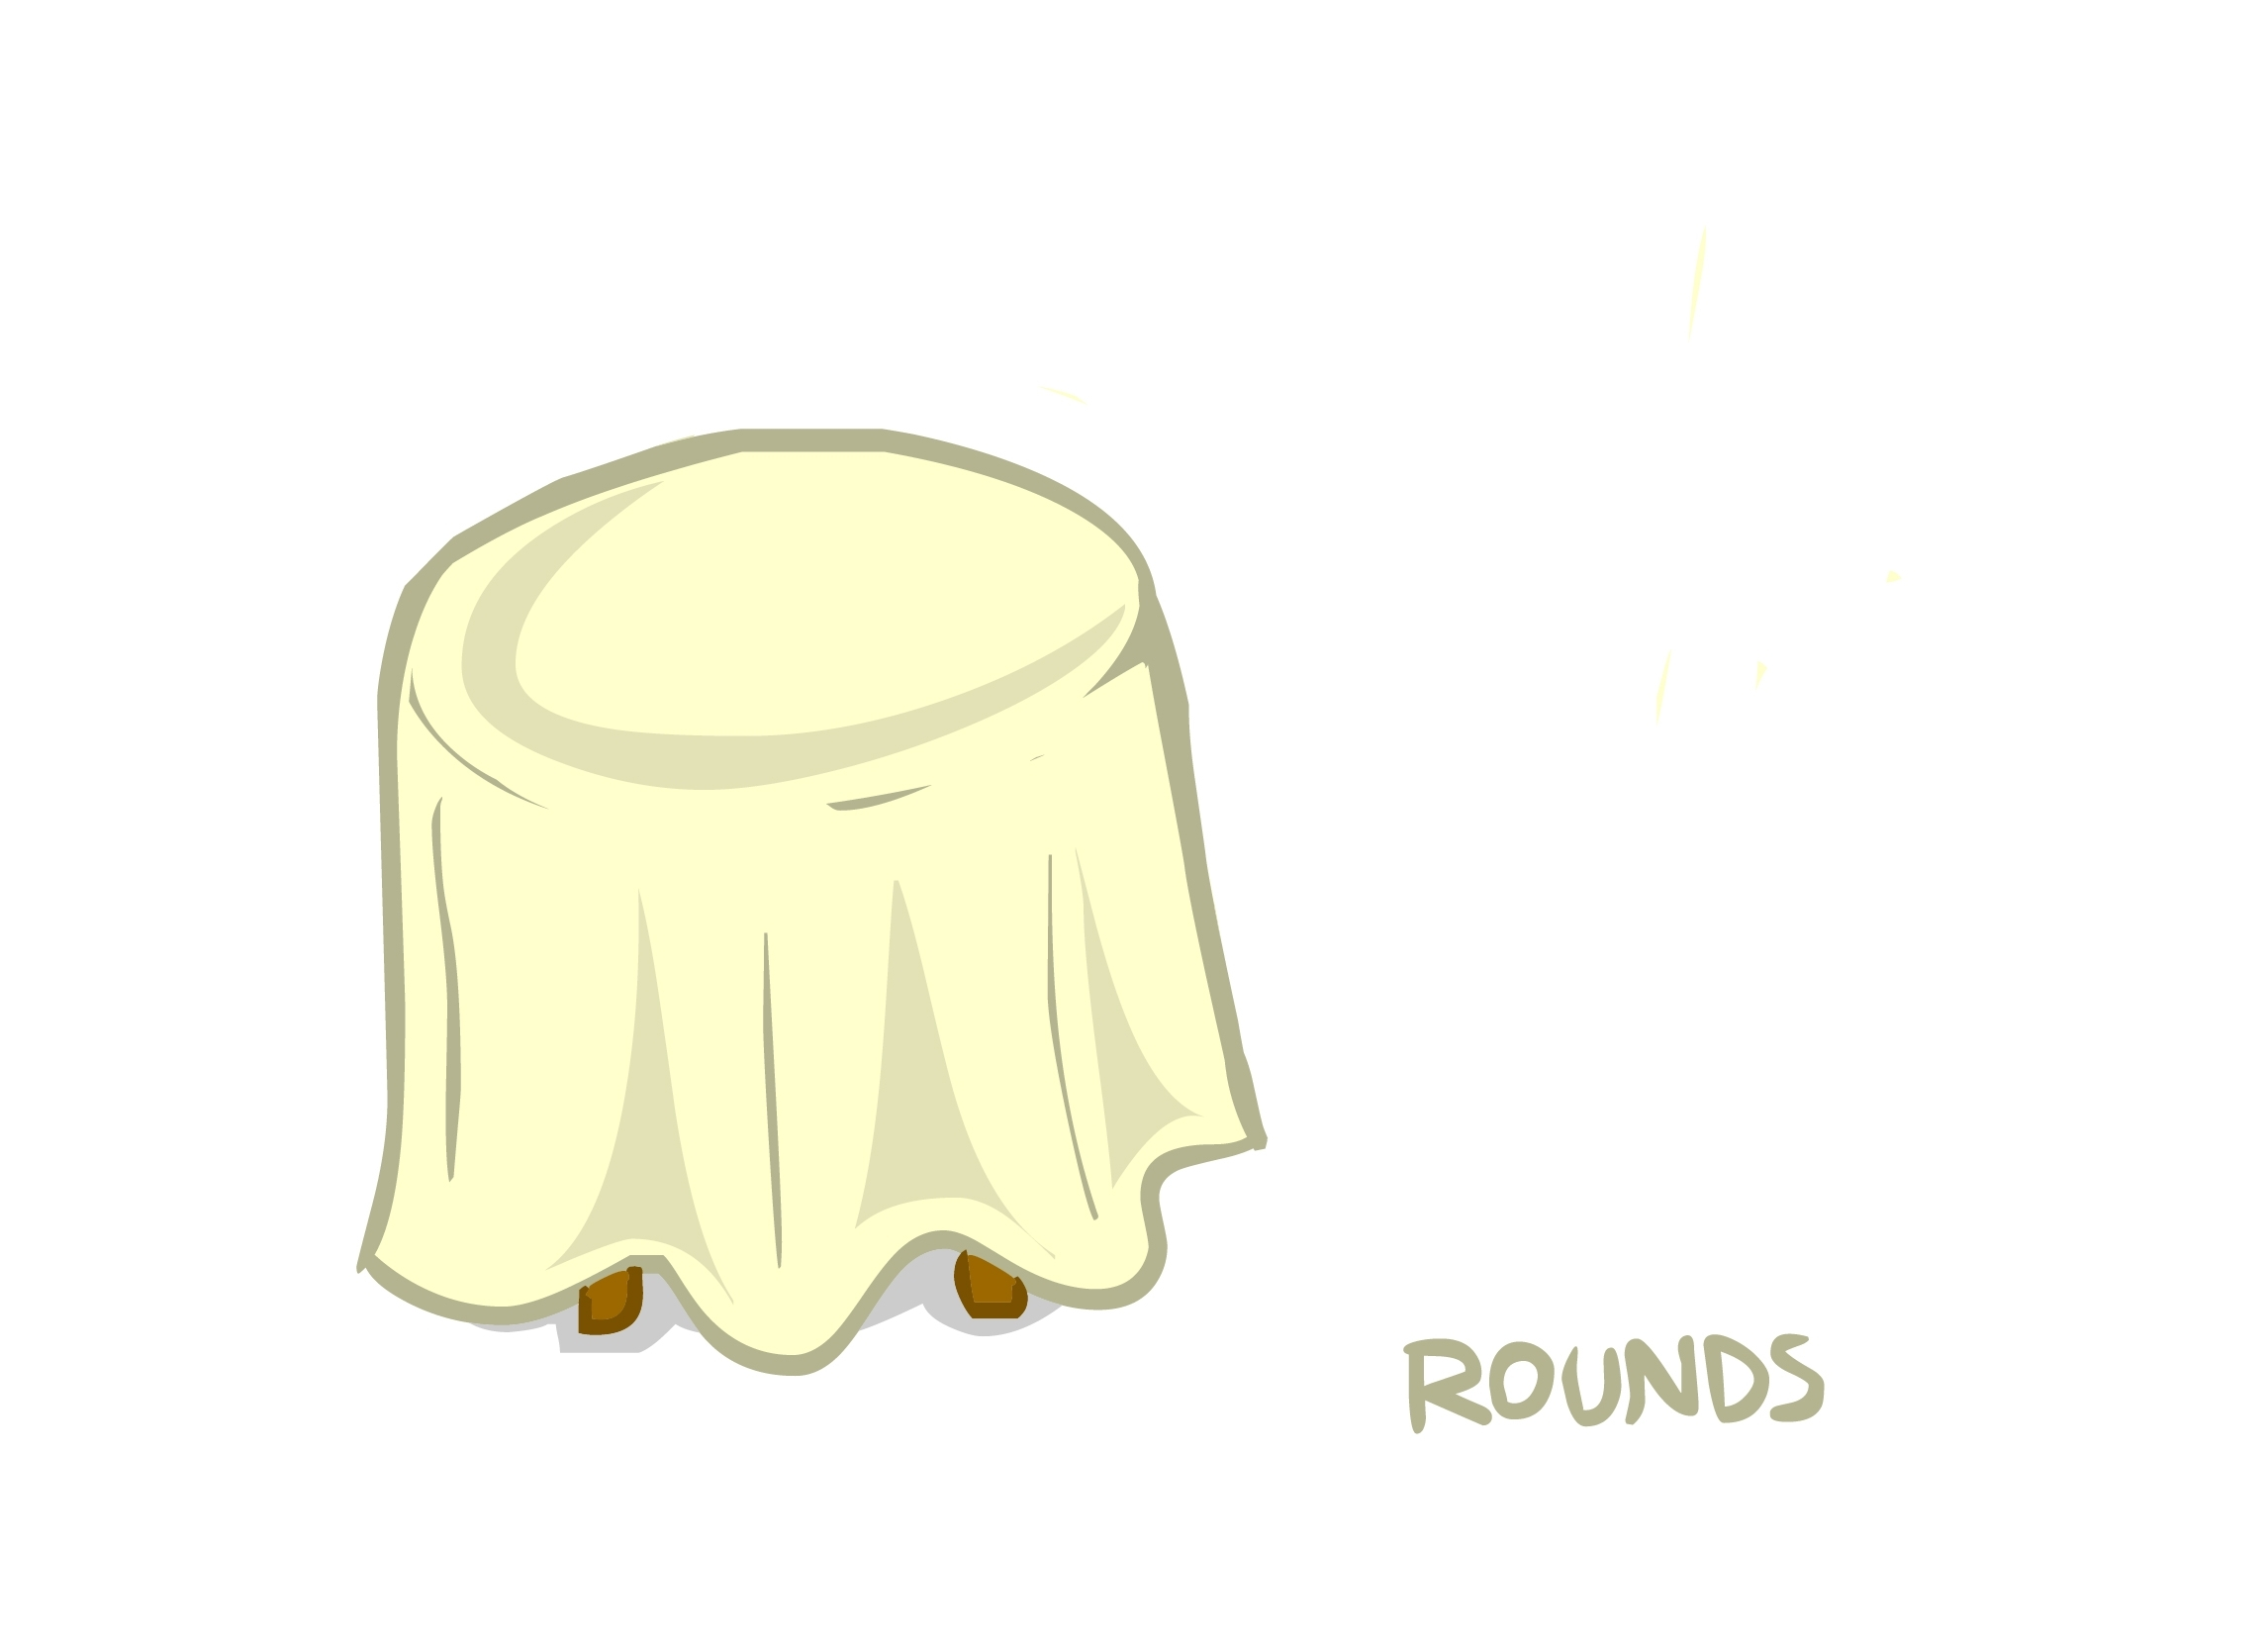 Chevron Round Tablecloths 01832